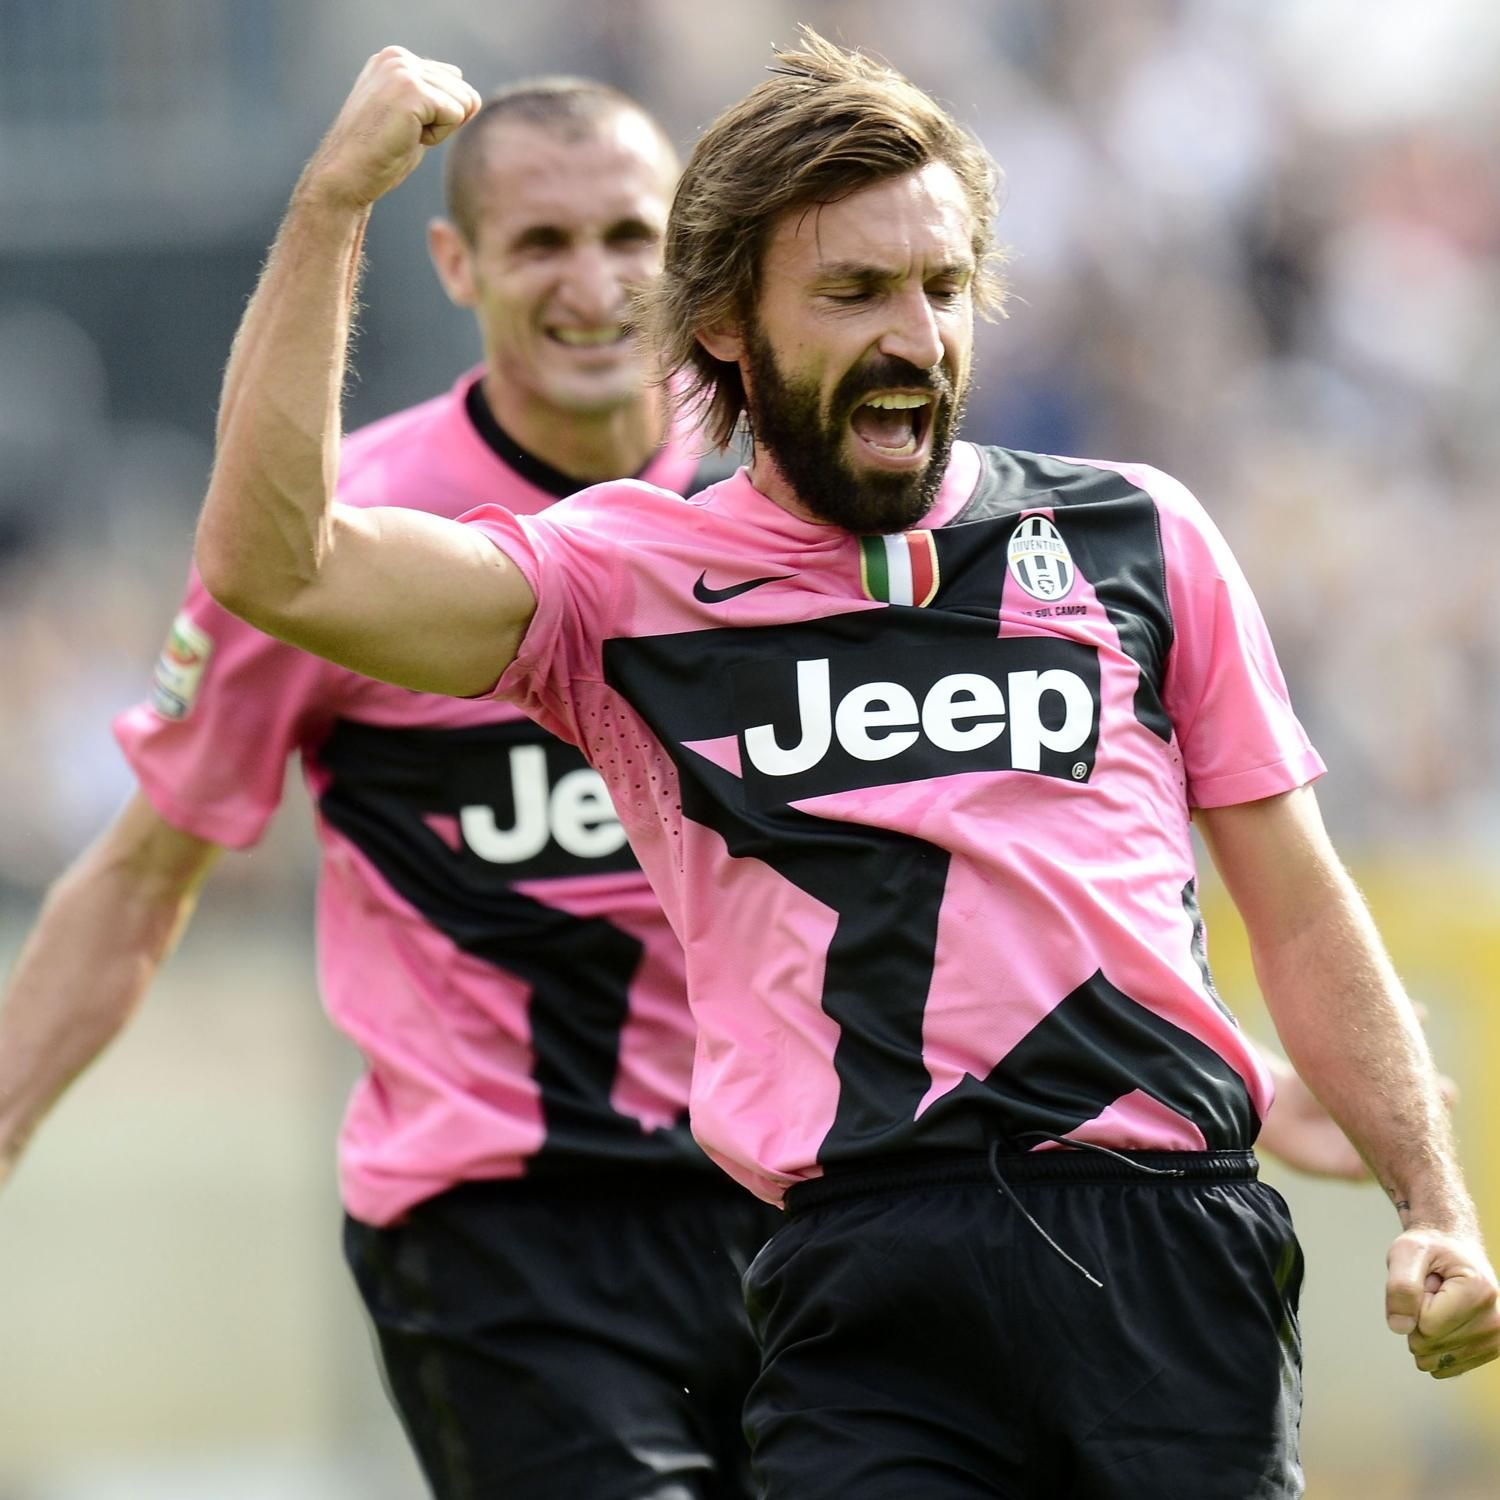 pin by john difiore on funnies andrea pirlo juventus soccer soccer players andrea pirlo juventus soccer soccer